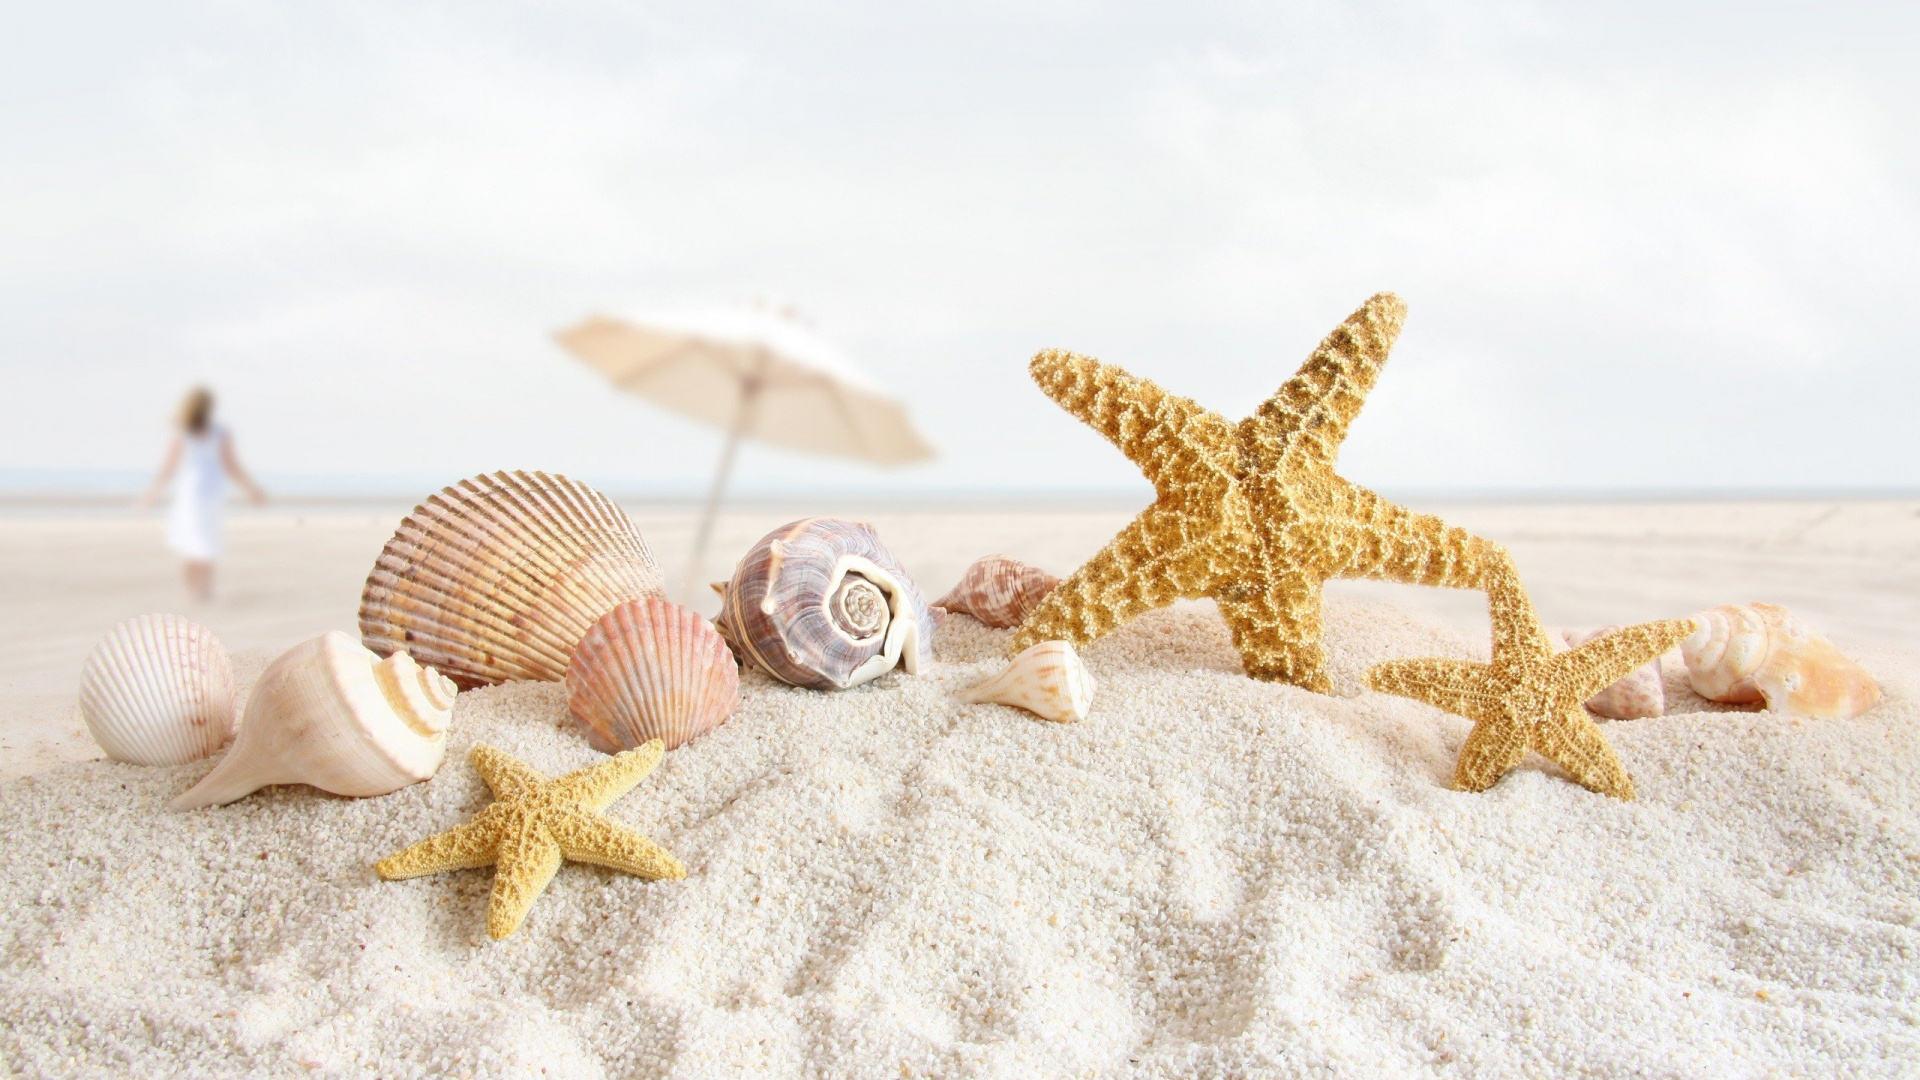 Please check our latest hd widescreen wallpaper below and bring beauty to your desktop. Starfish Wallpapers